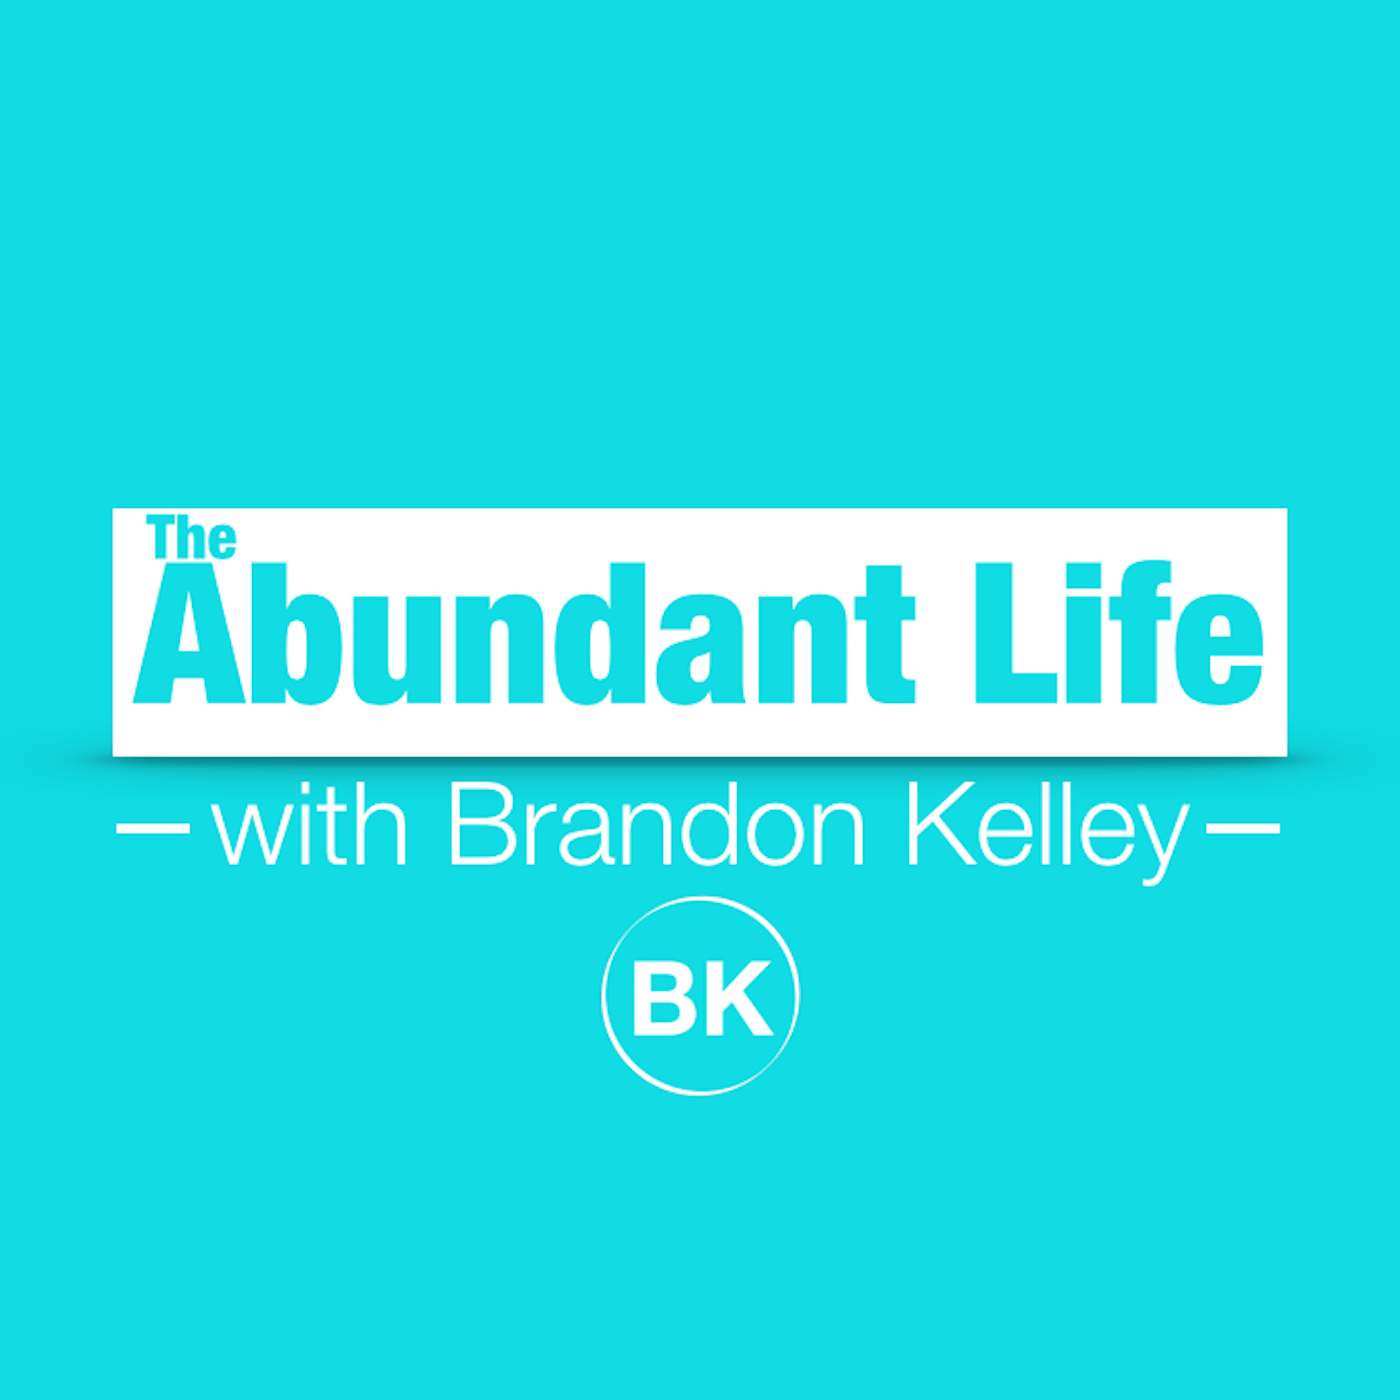 The Abundant Life with Brandon Kelley